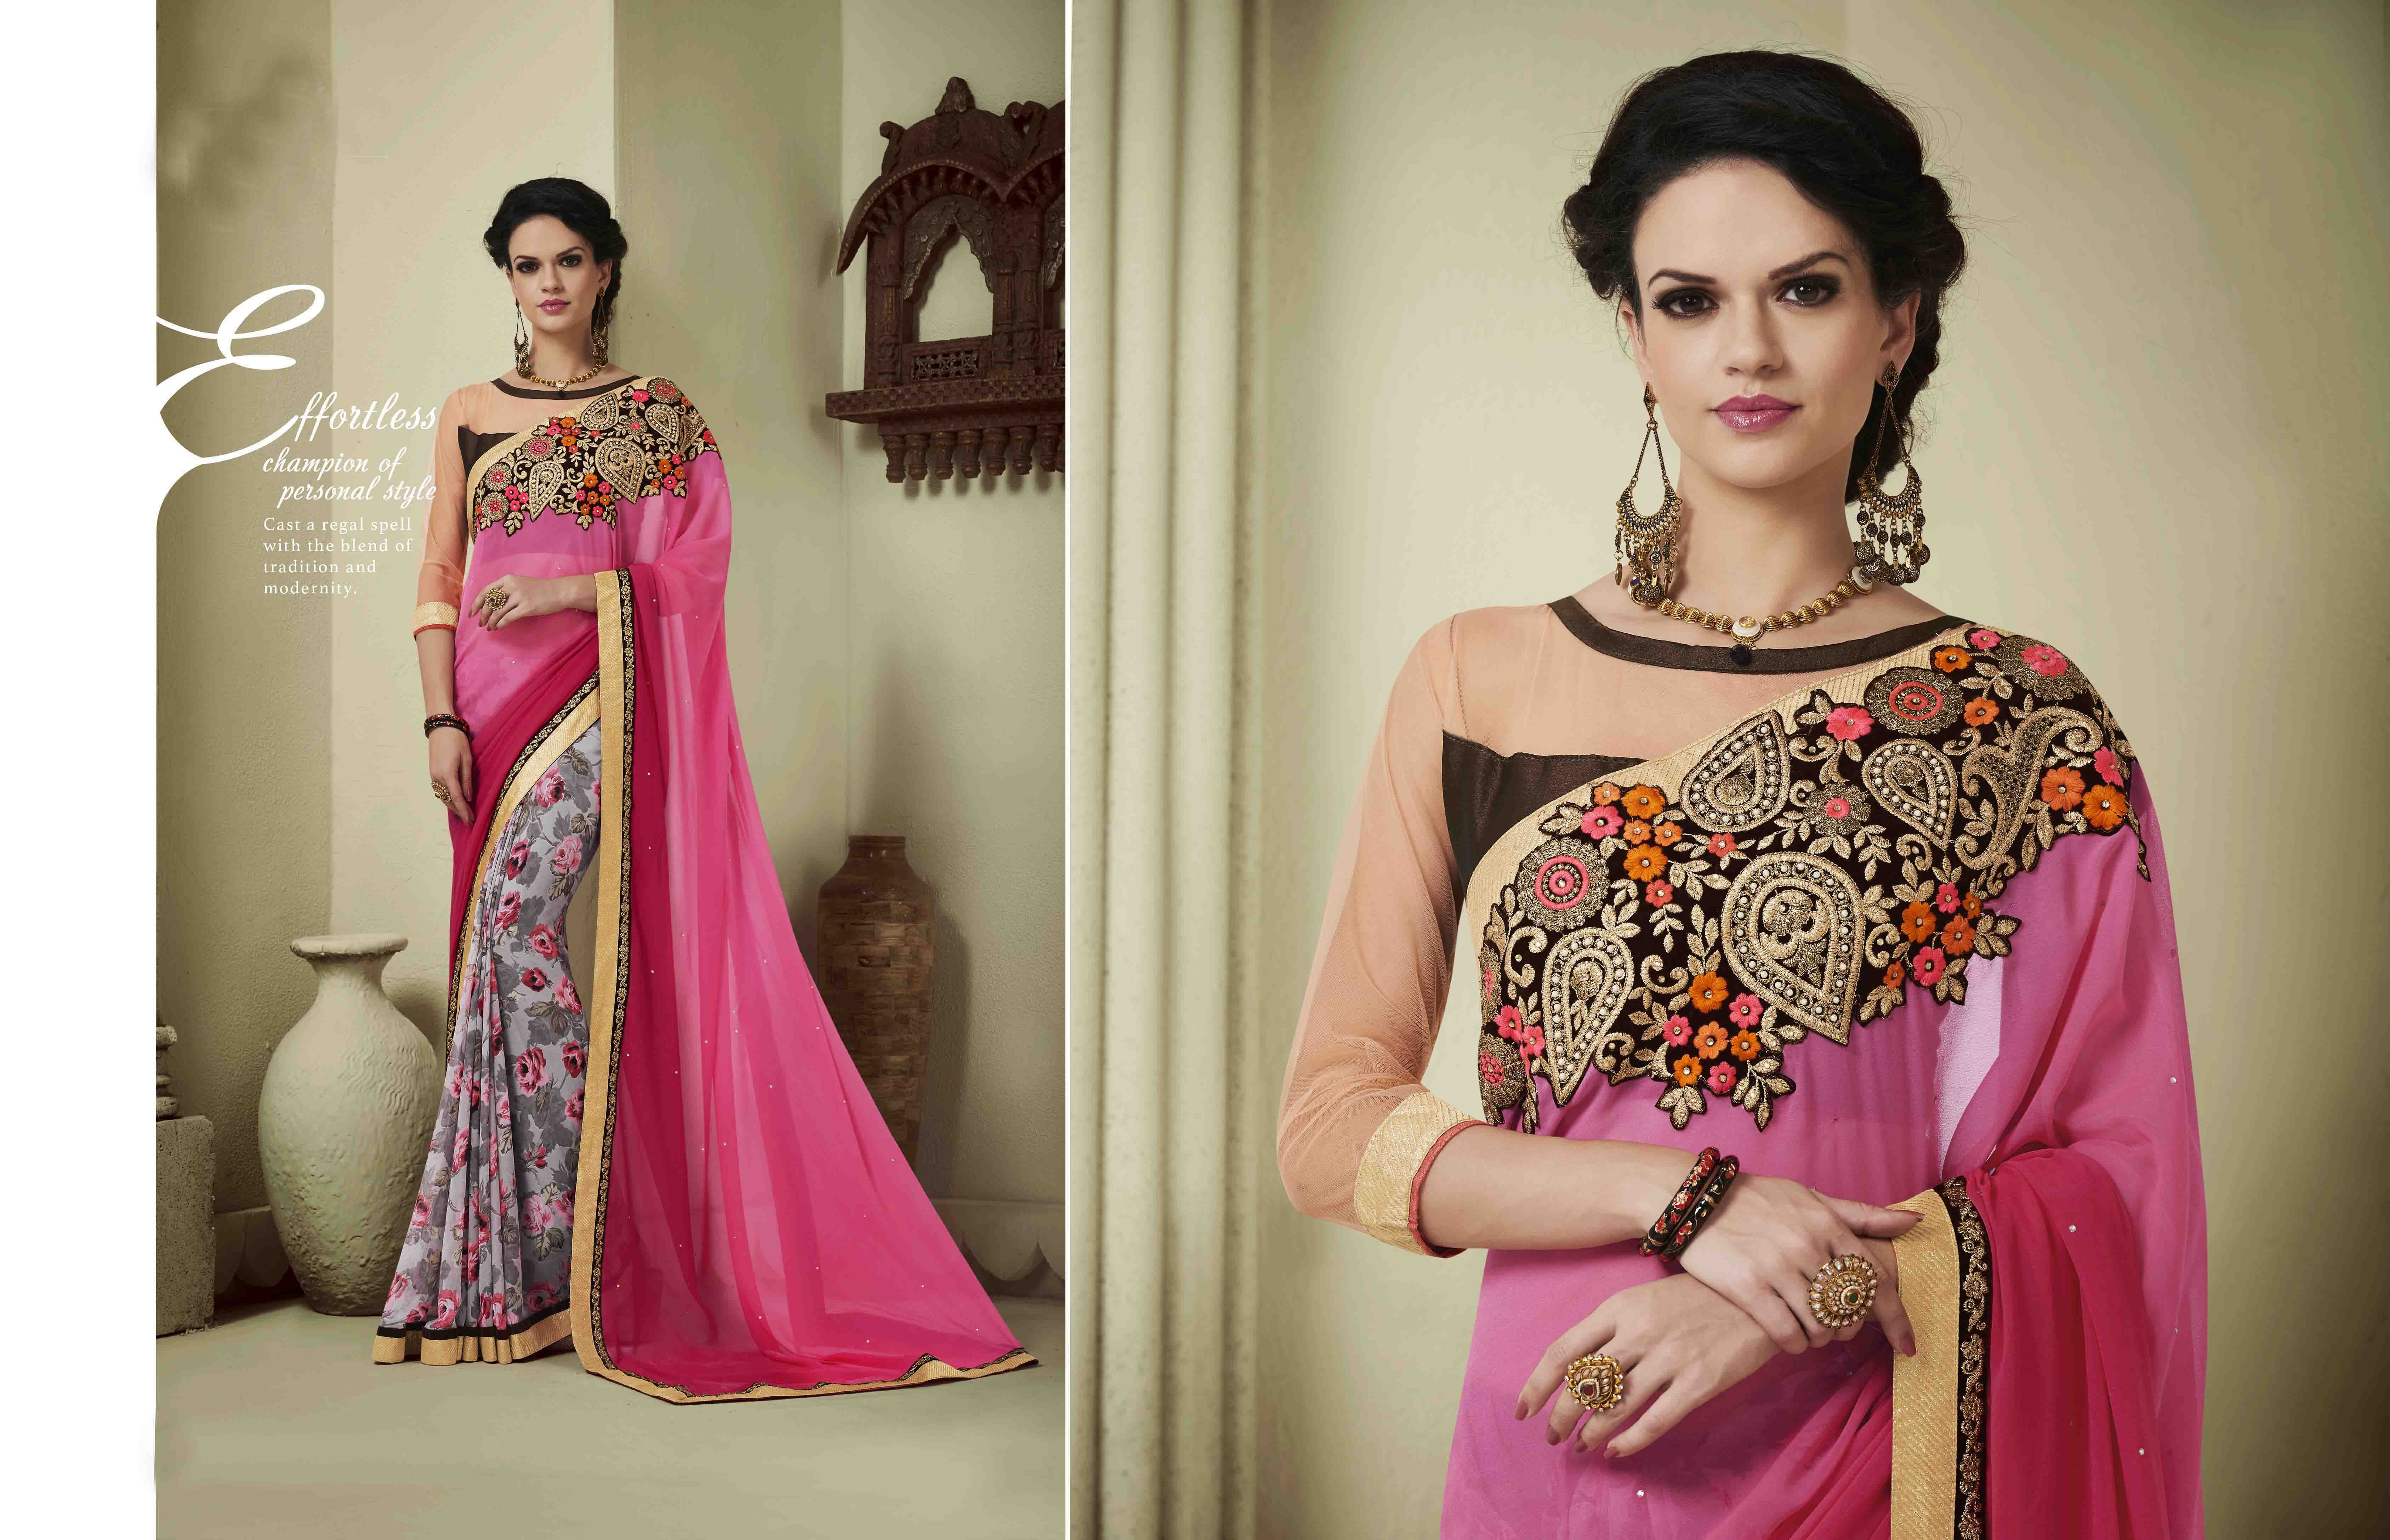 http://www.thatsend.com/shopping/lp/fvp/TESG202668/i/TE265726/iu/pink-georgette-designer-saree  Pink Georgette Designer Saree Apparel Pattern Embroidered. Work Embroidery, Border Lace. Blouse Piece Yes. Occasion Ceremonial, Festive. Top Color Ivory.